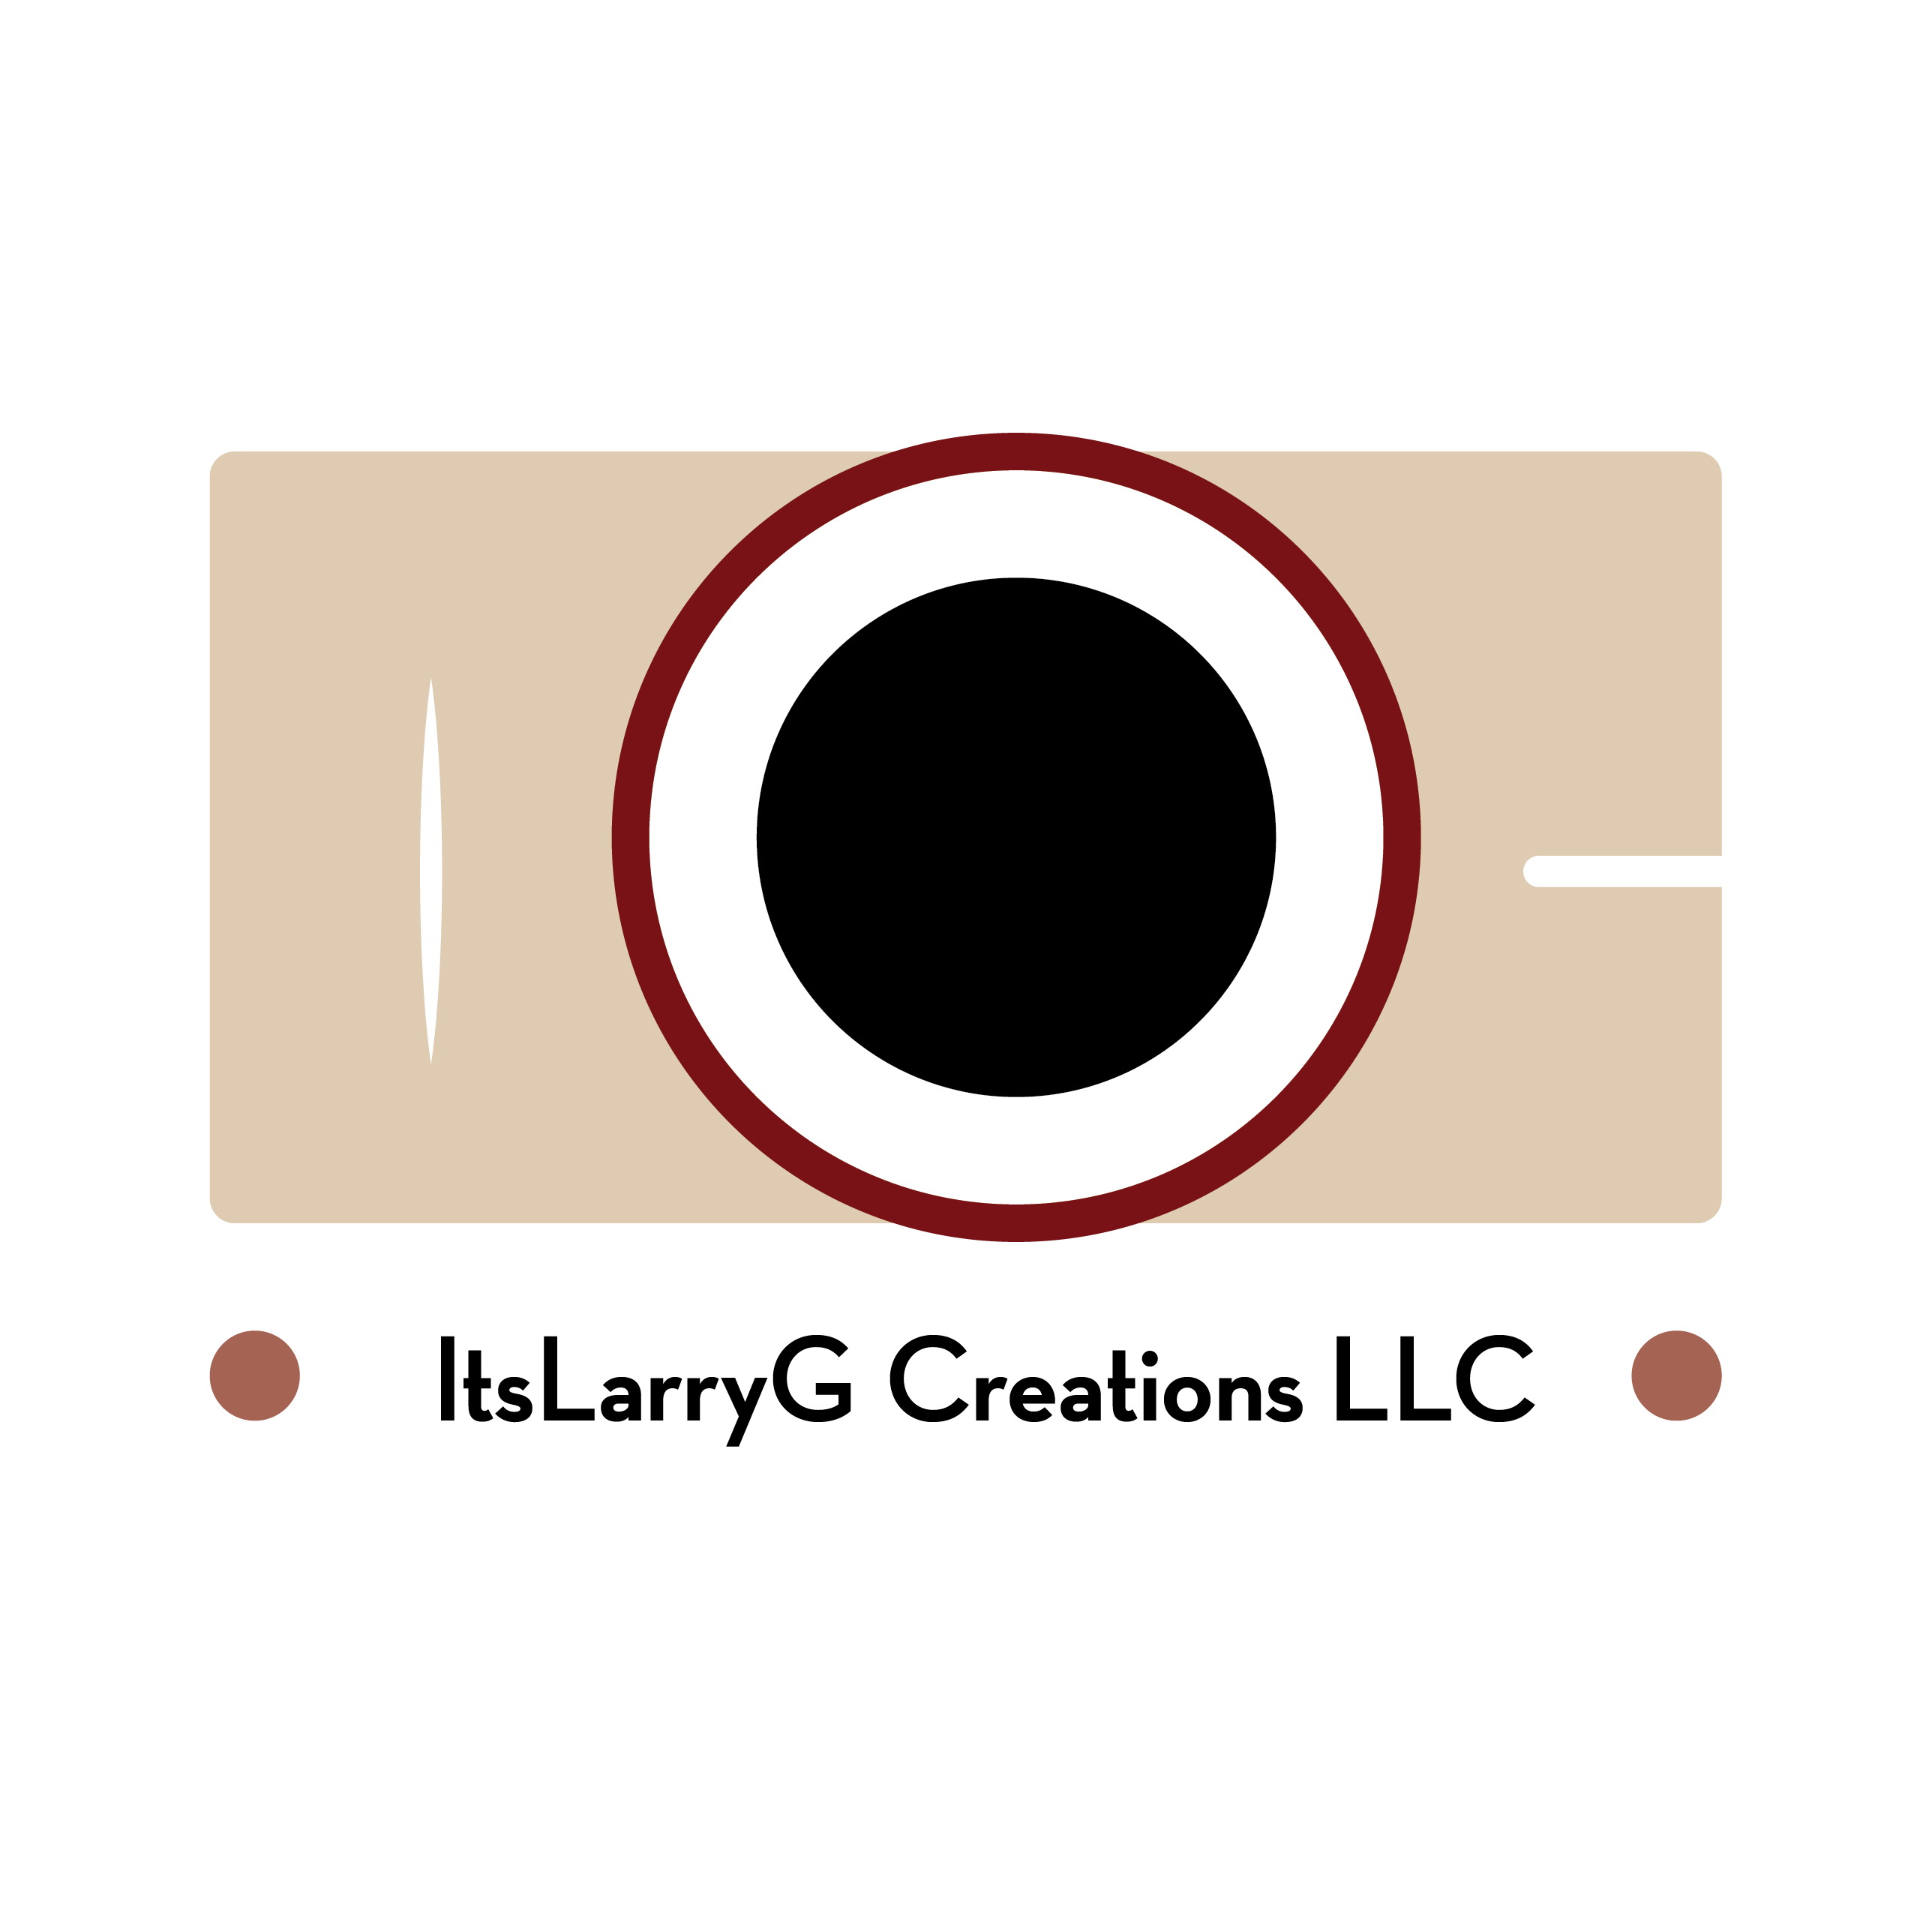 ItsLarryG Creations LLC